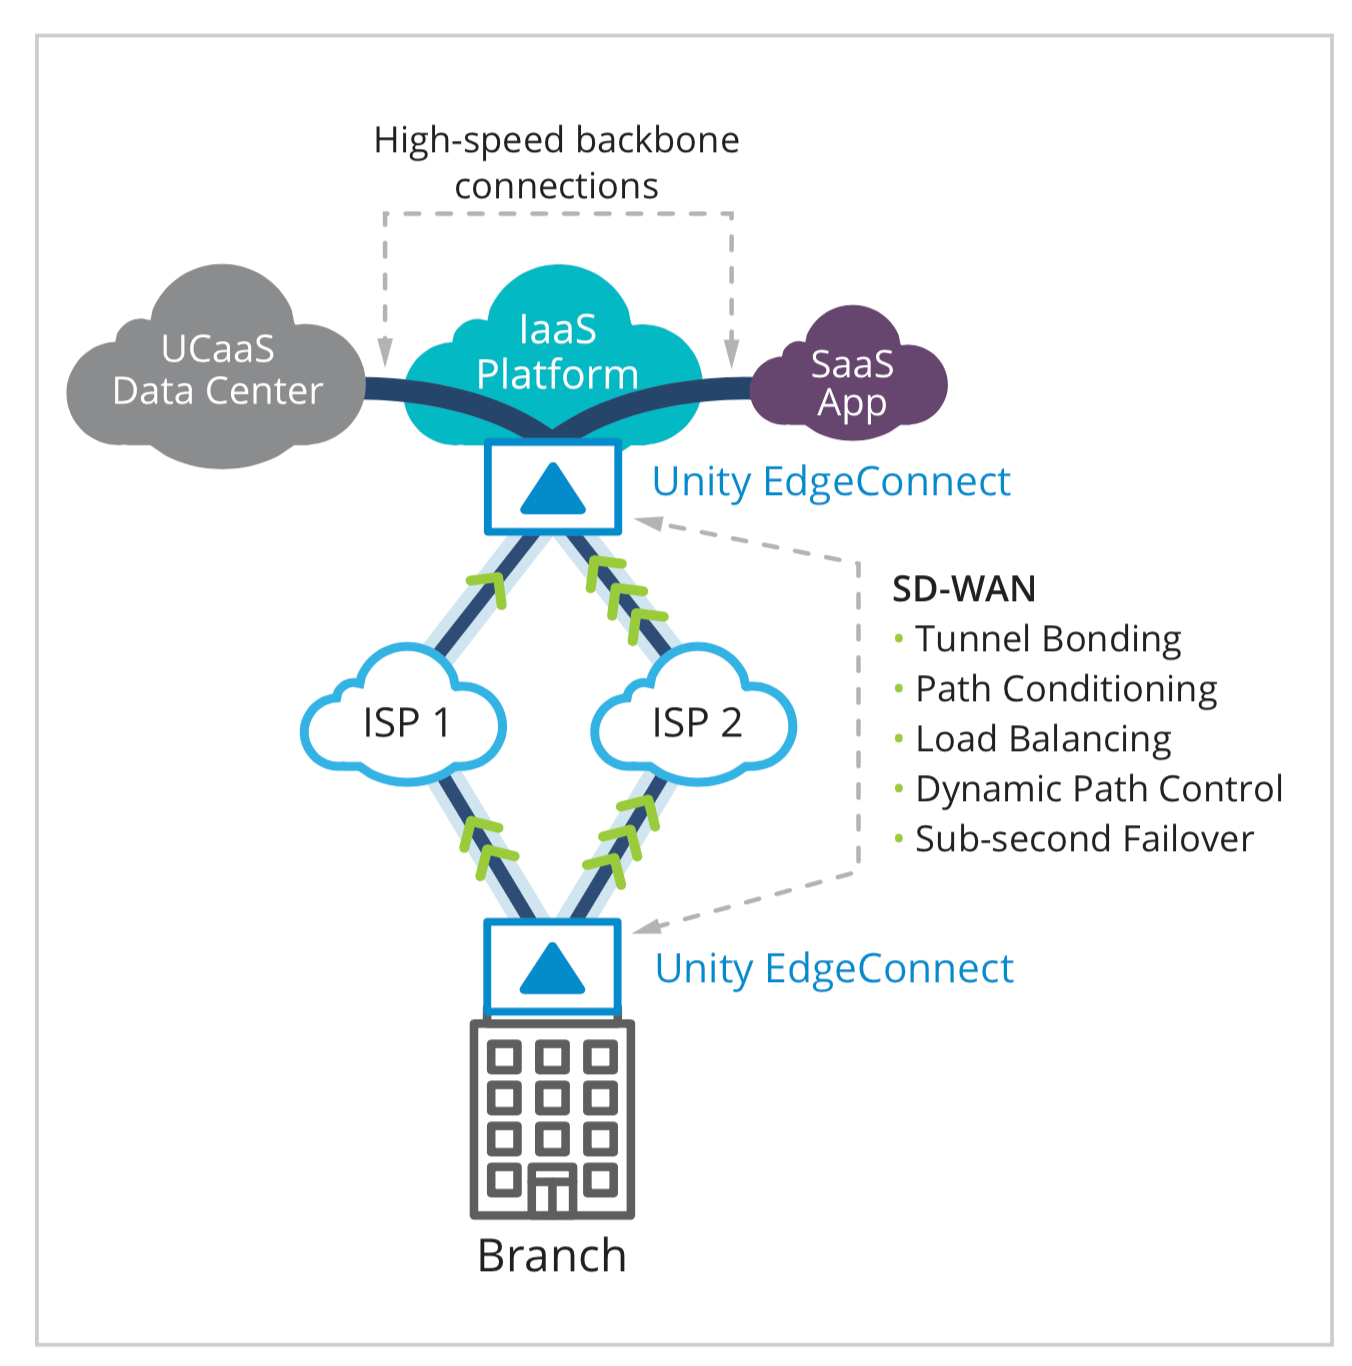 "Figure 1: Two SD-WAN appliances work together to improve work together to improve the performance and reliability of traffic in the ""first mile"" between the branch and the IaaS platform. High-speed backbone connections in the cloud improve network quality and performance over the ""last mile"" between the IaaS platform and the UCaaS data center."